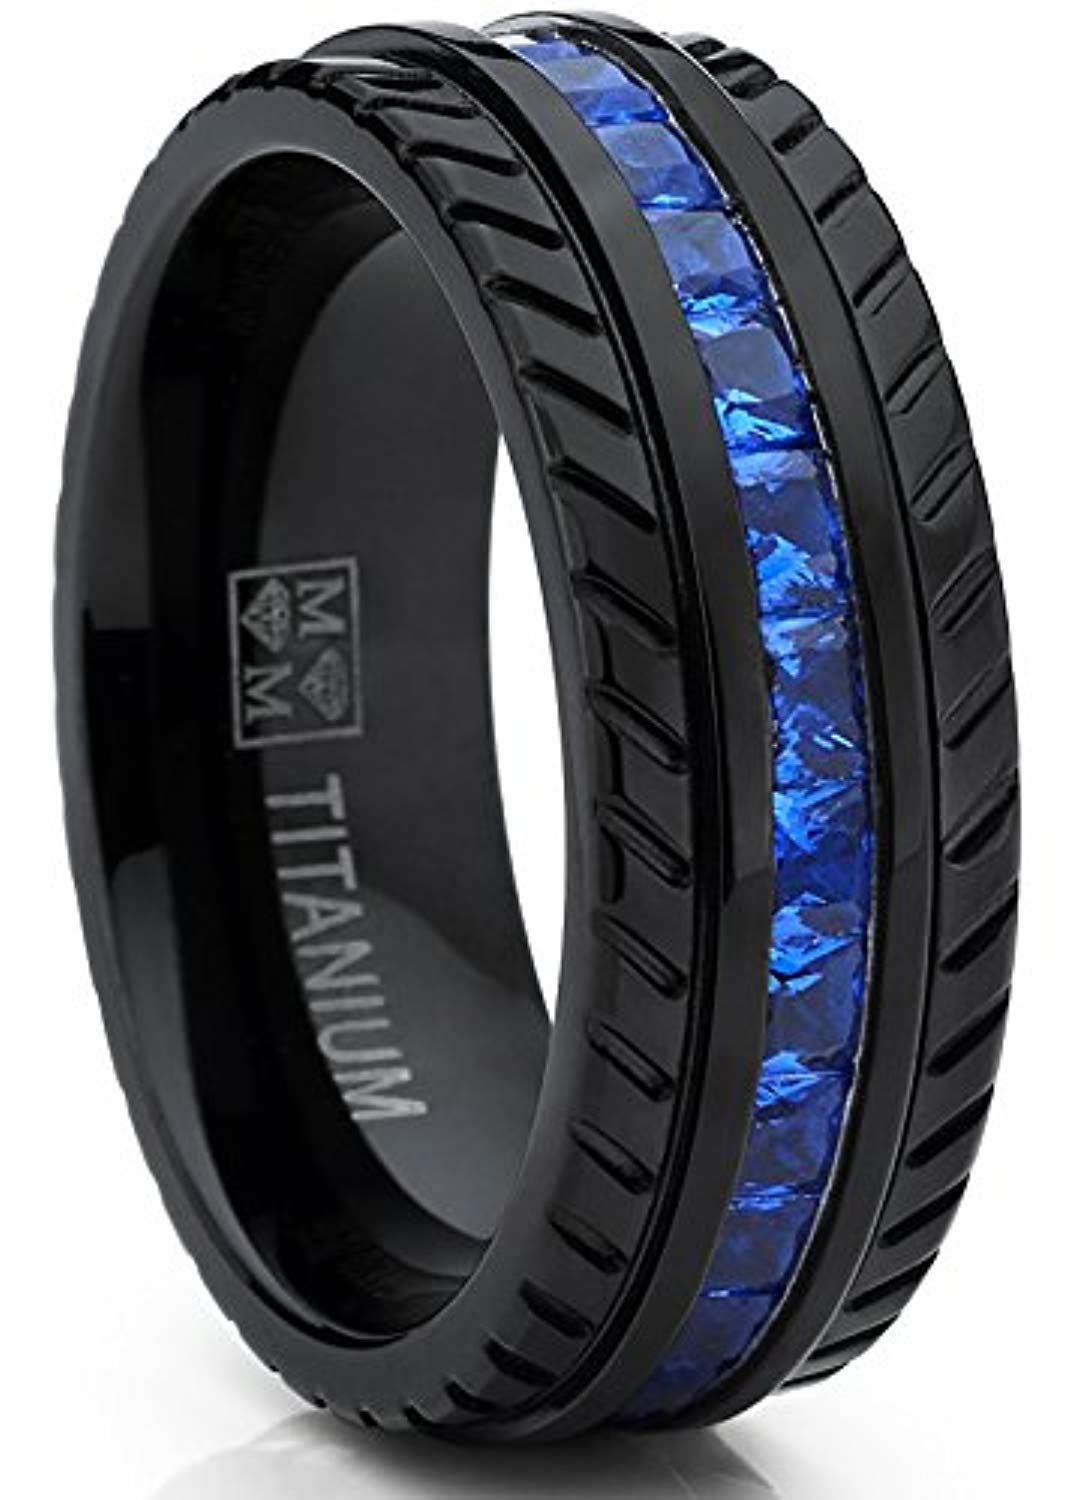 Men's Black Titanium Wedding Band, Engagement Eternity Ring Sizes 8 - 12 W/Princess Cut Deep Blue Cubic Zirconia CZ